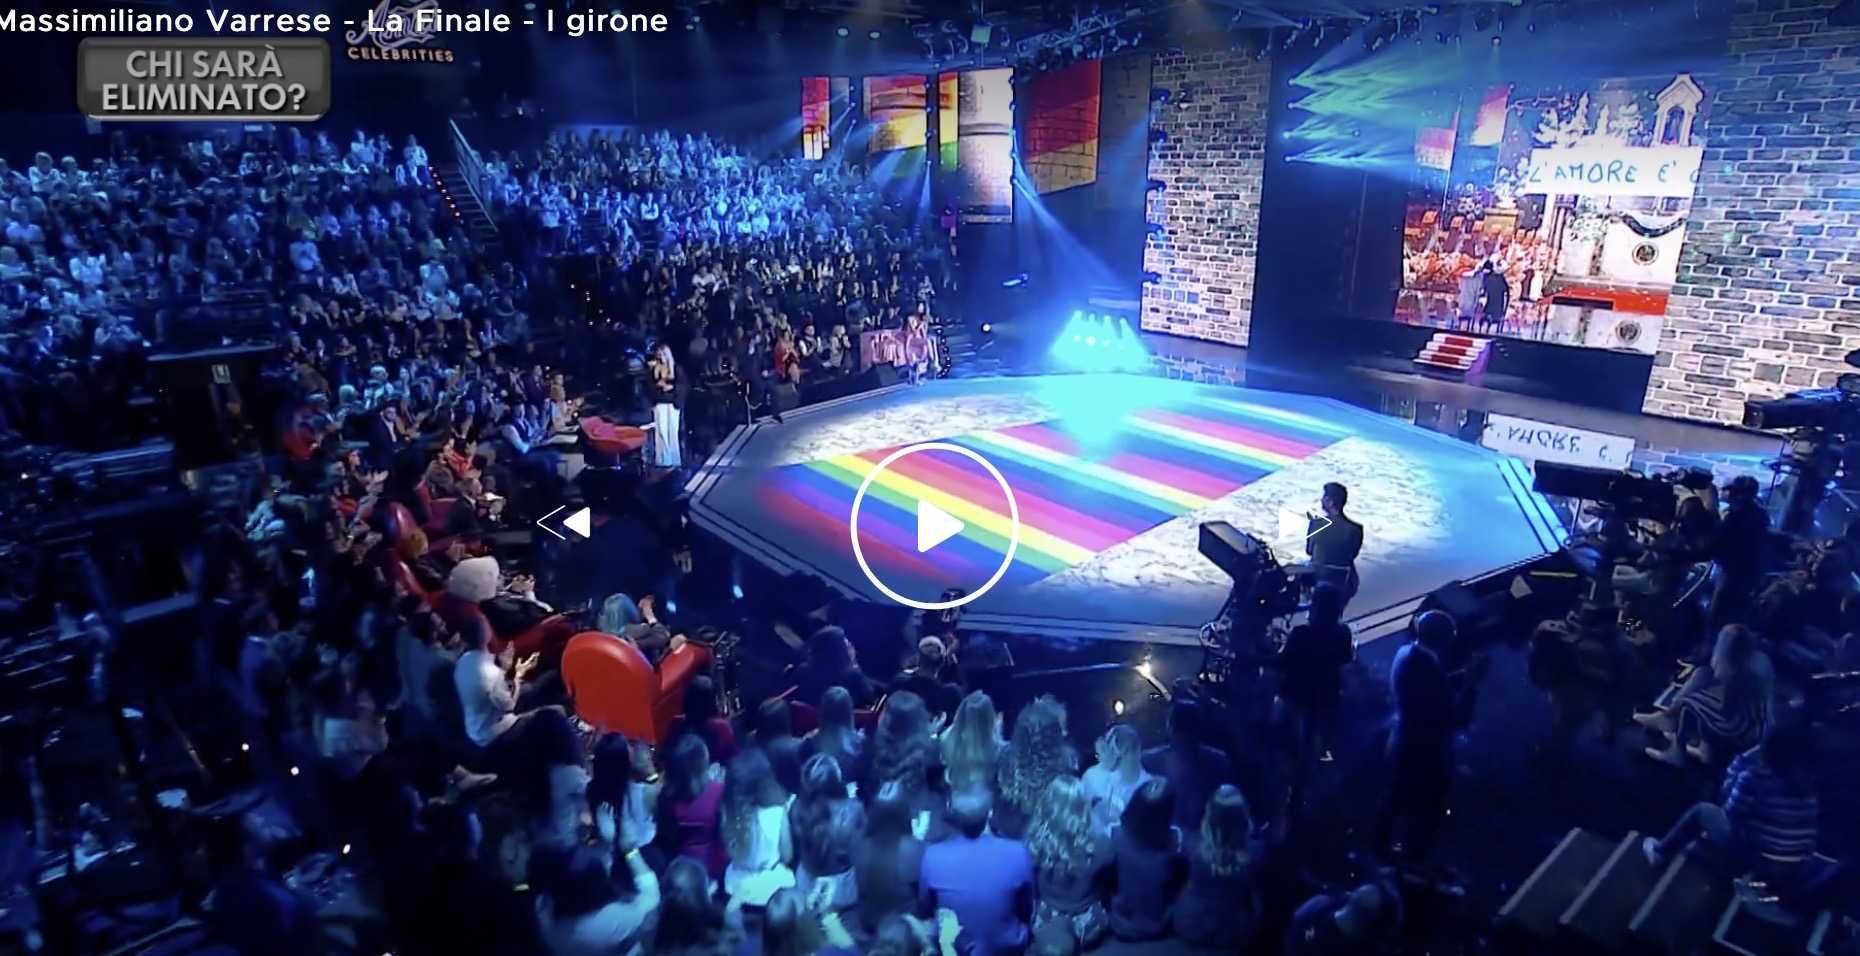 Amici Celebrities gay peparini omosessuali matrimoni